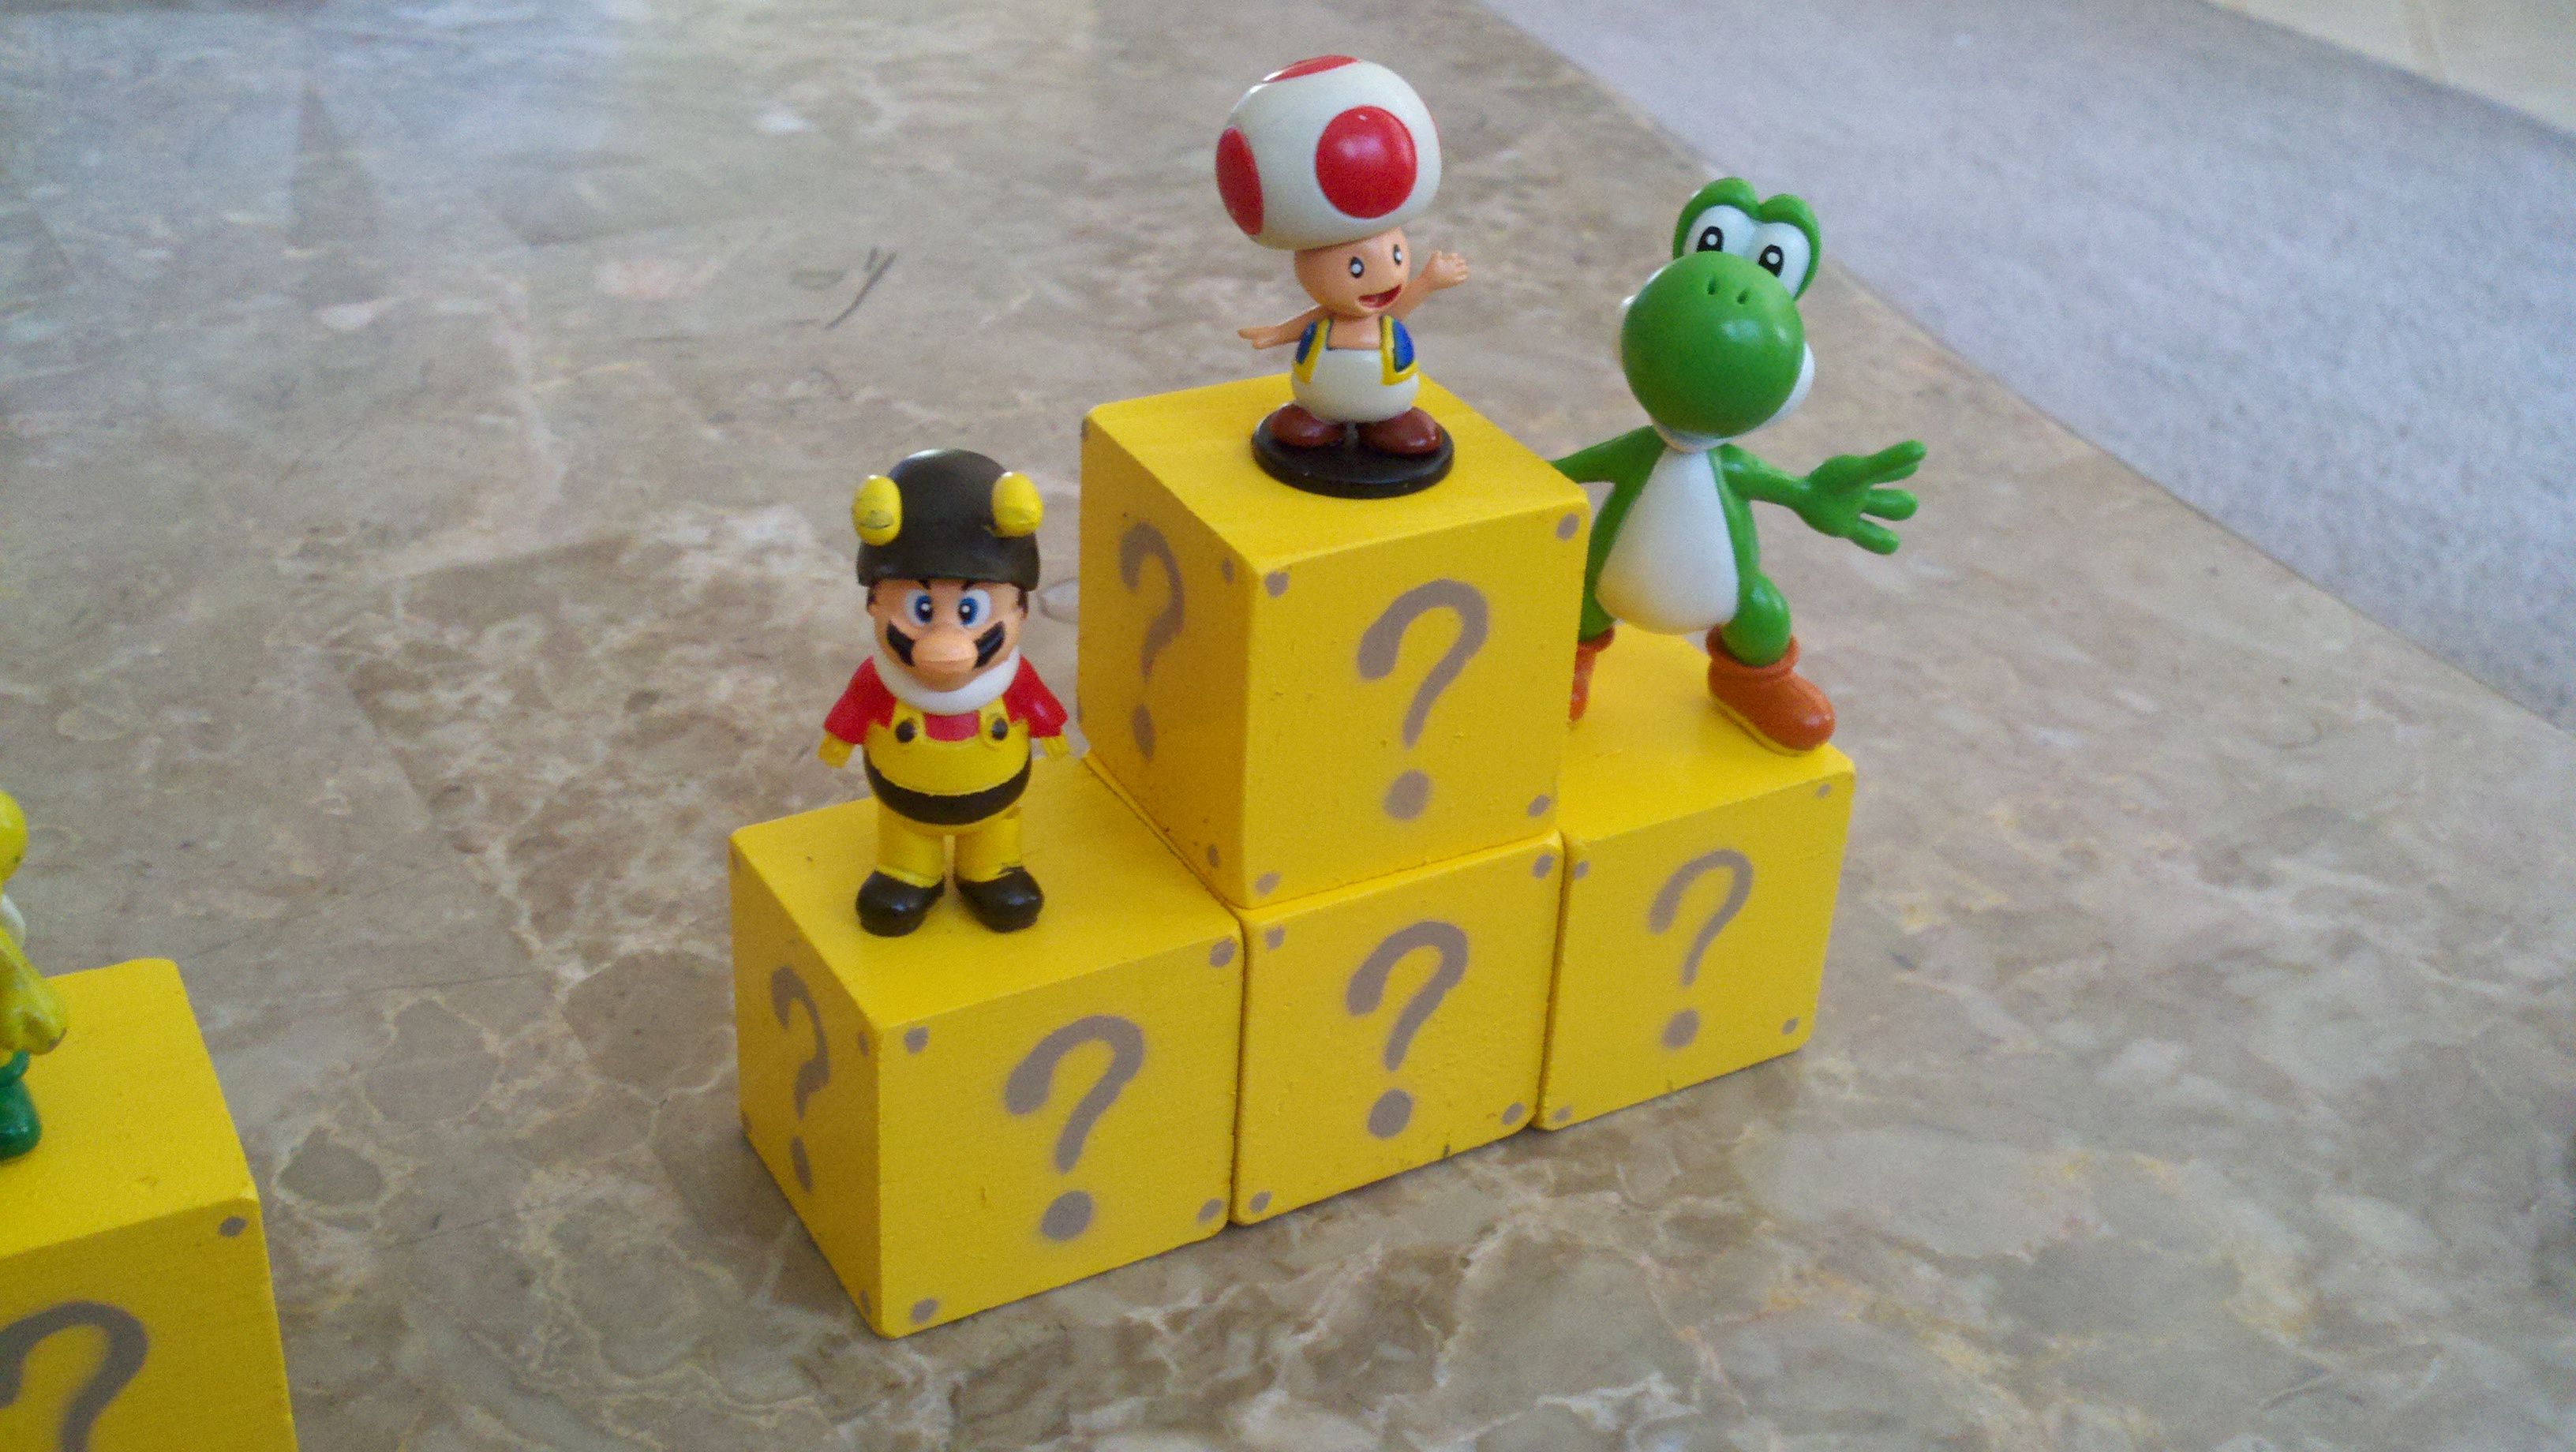 Mario themed building blocks